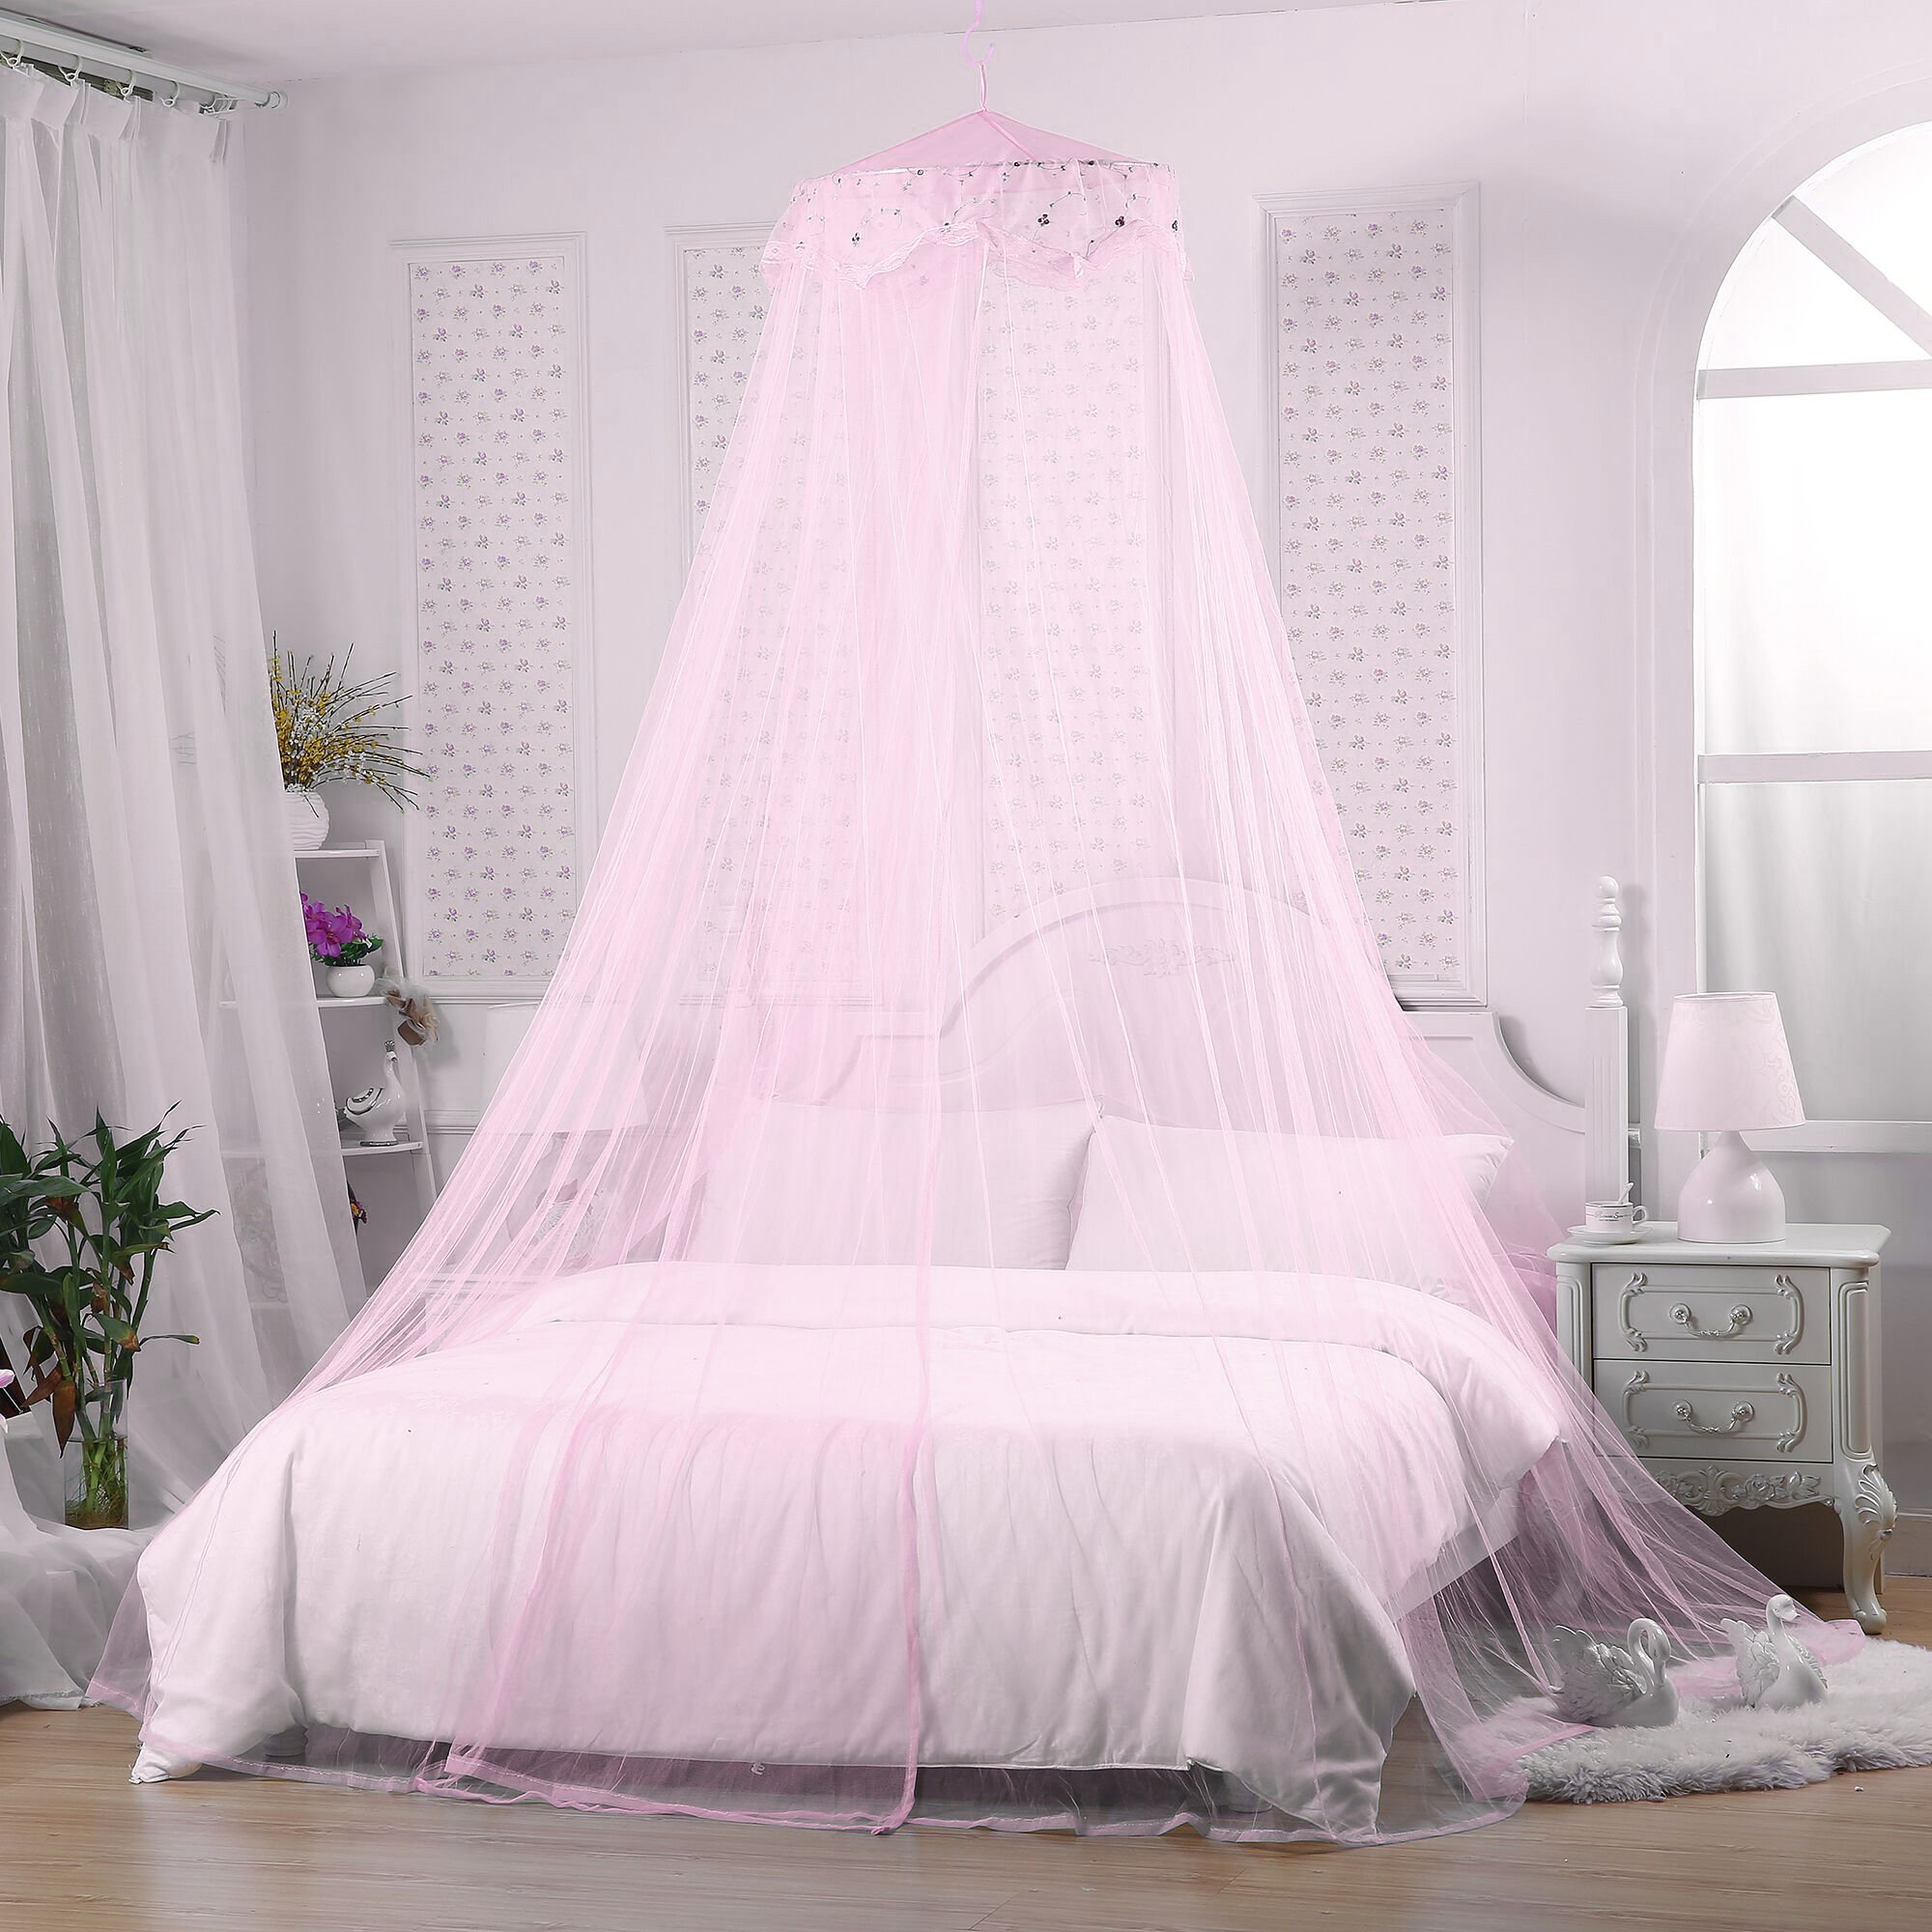 Jeteven Princess Mosquito Net Lace Dome Bed Canopy for Children Fly Insect Protection Indoor/Outdoor & Bed Canopies for Children: Amazon.co.uk